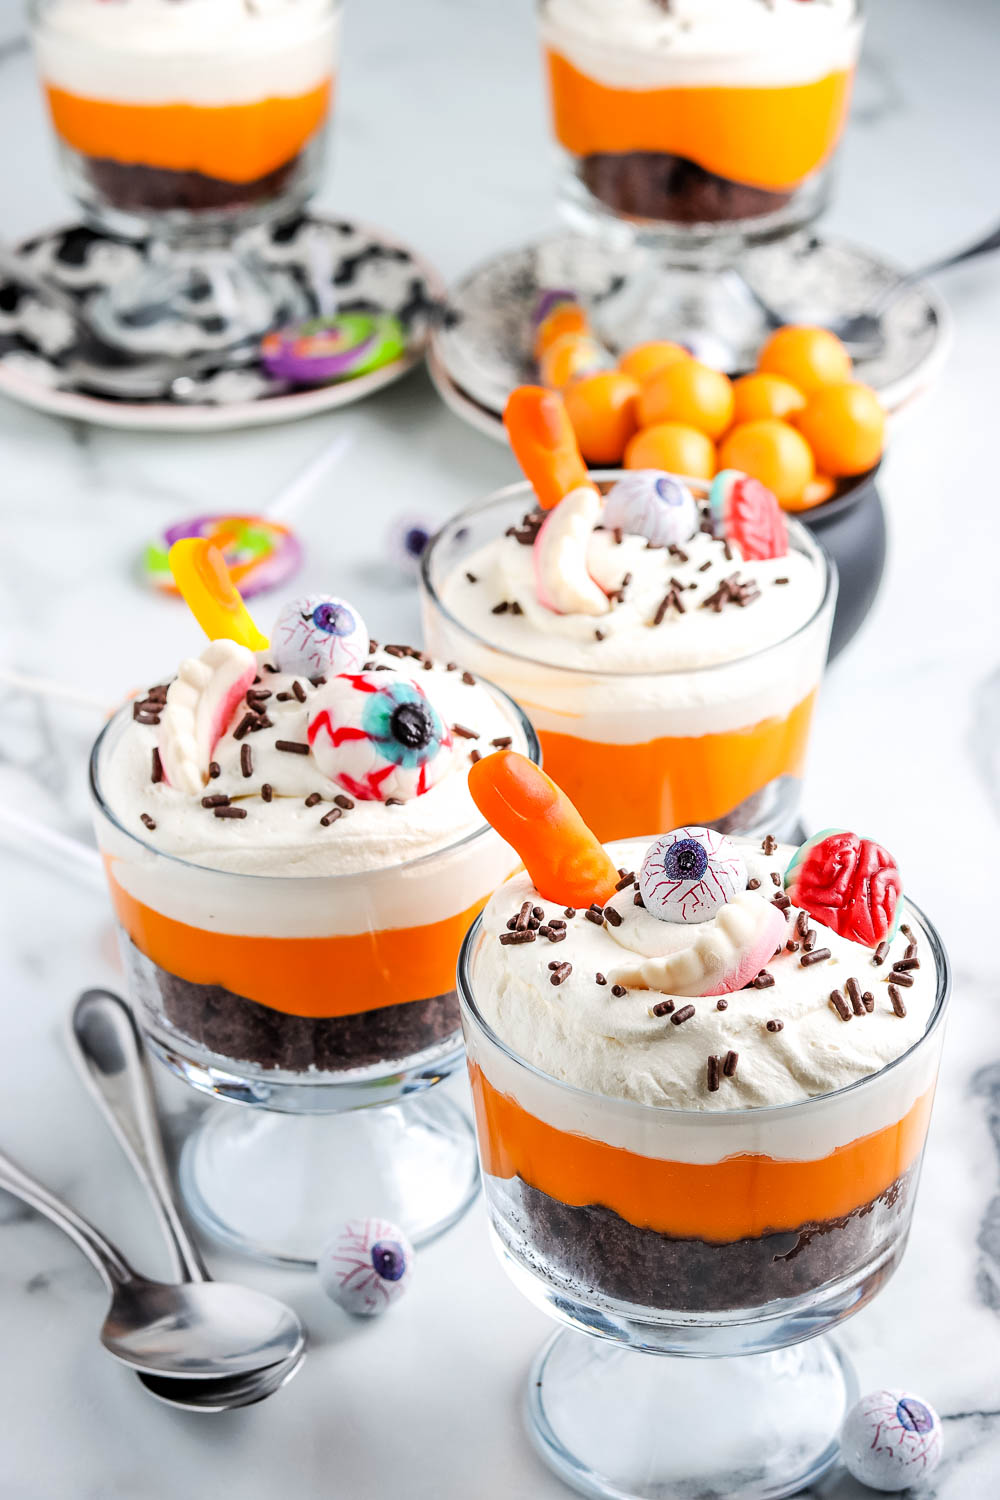 Chocolate trifles decorated with Halloween candies.